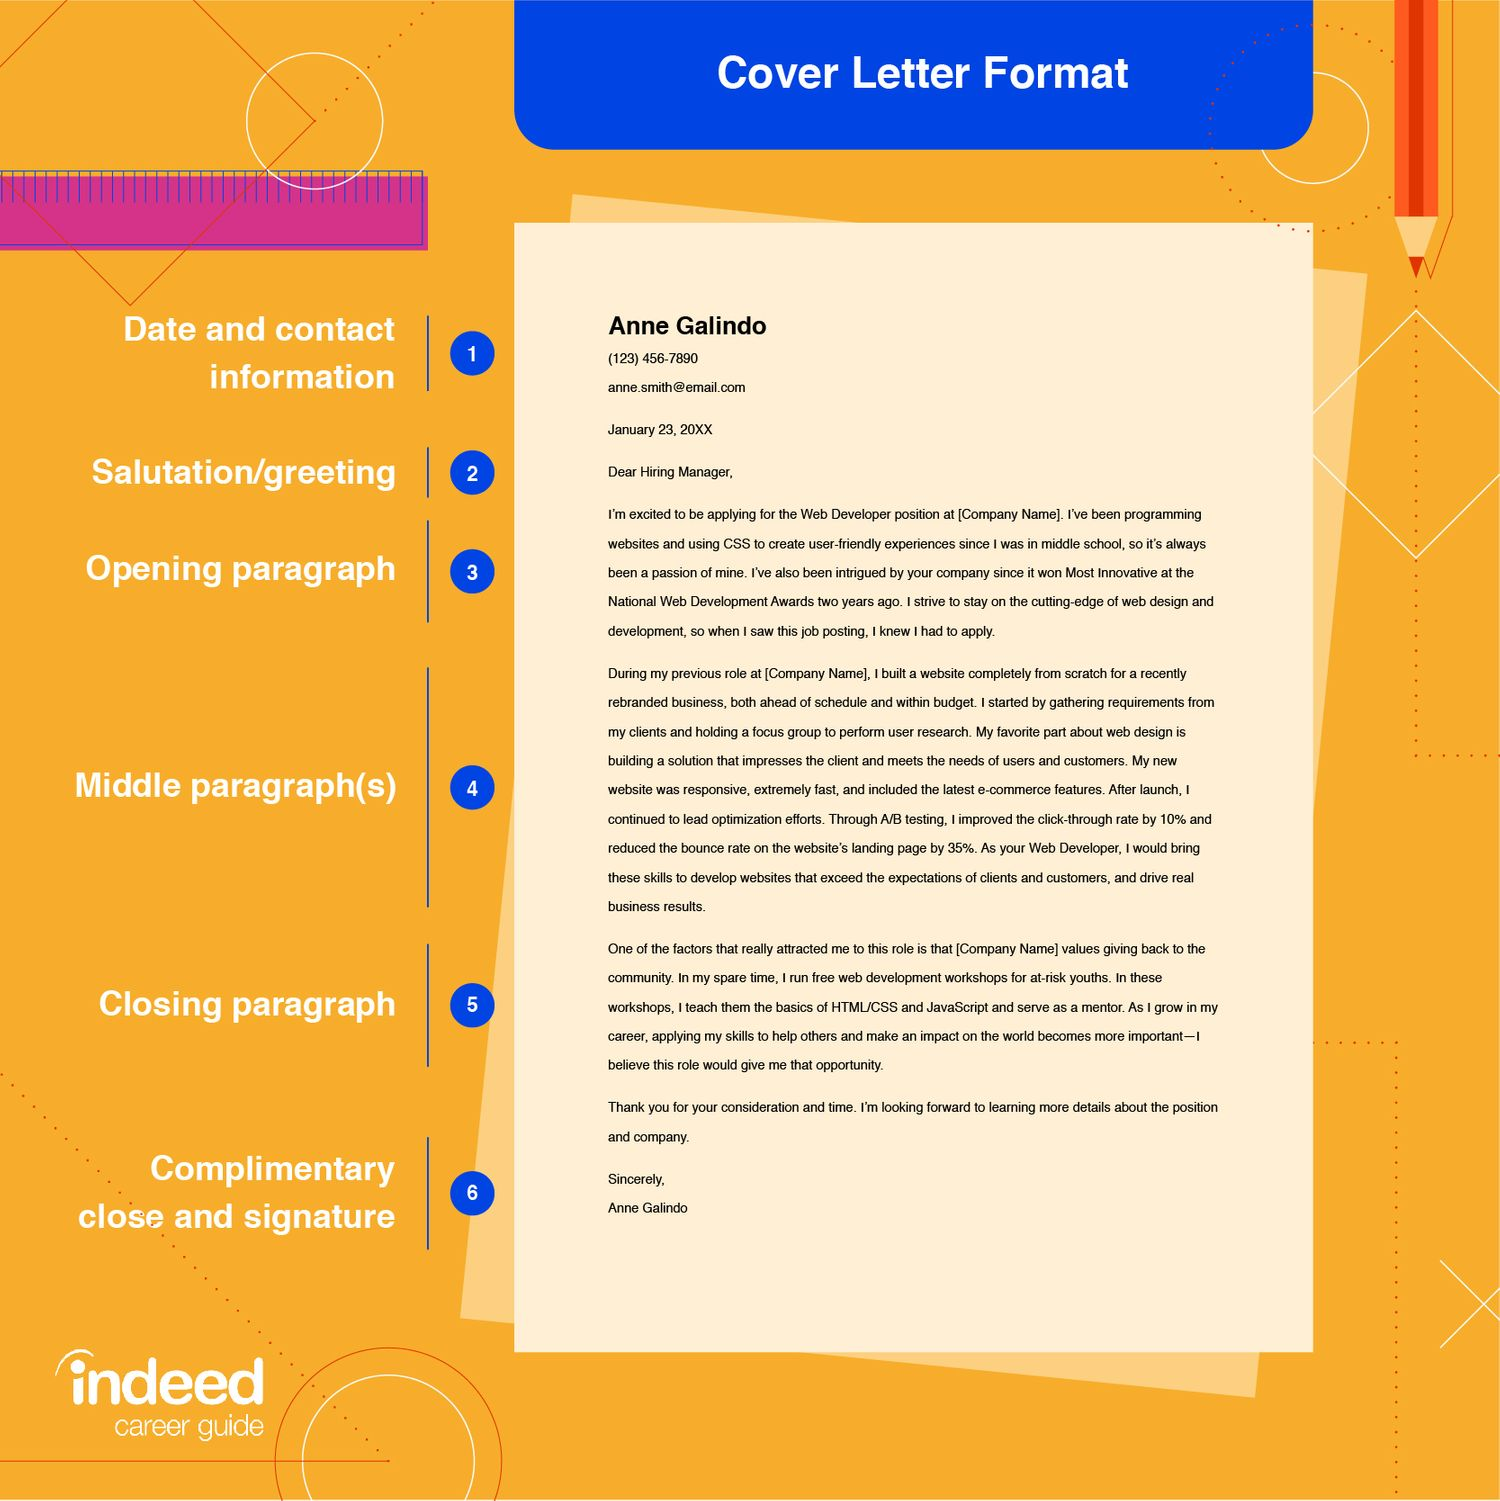 to write cover letter indeed resume doing business crossword resized receiving job Resume Resume Doing Business Crossword